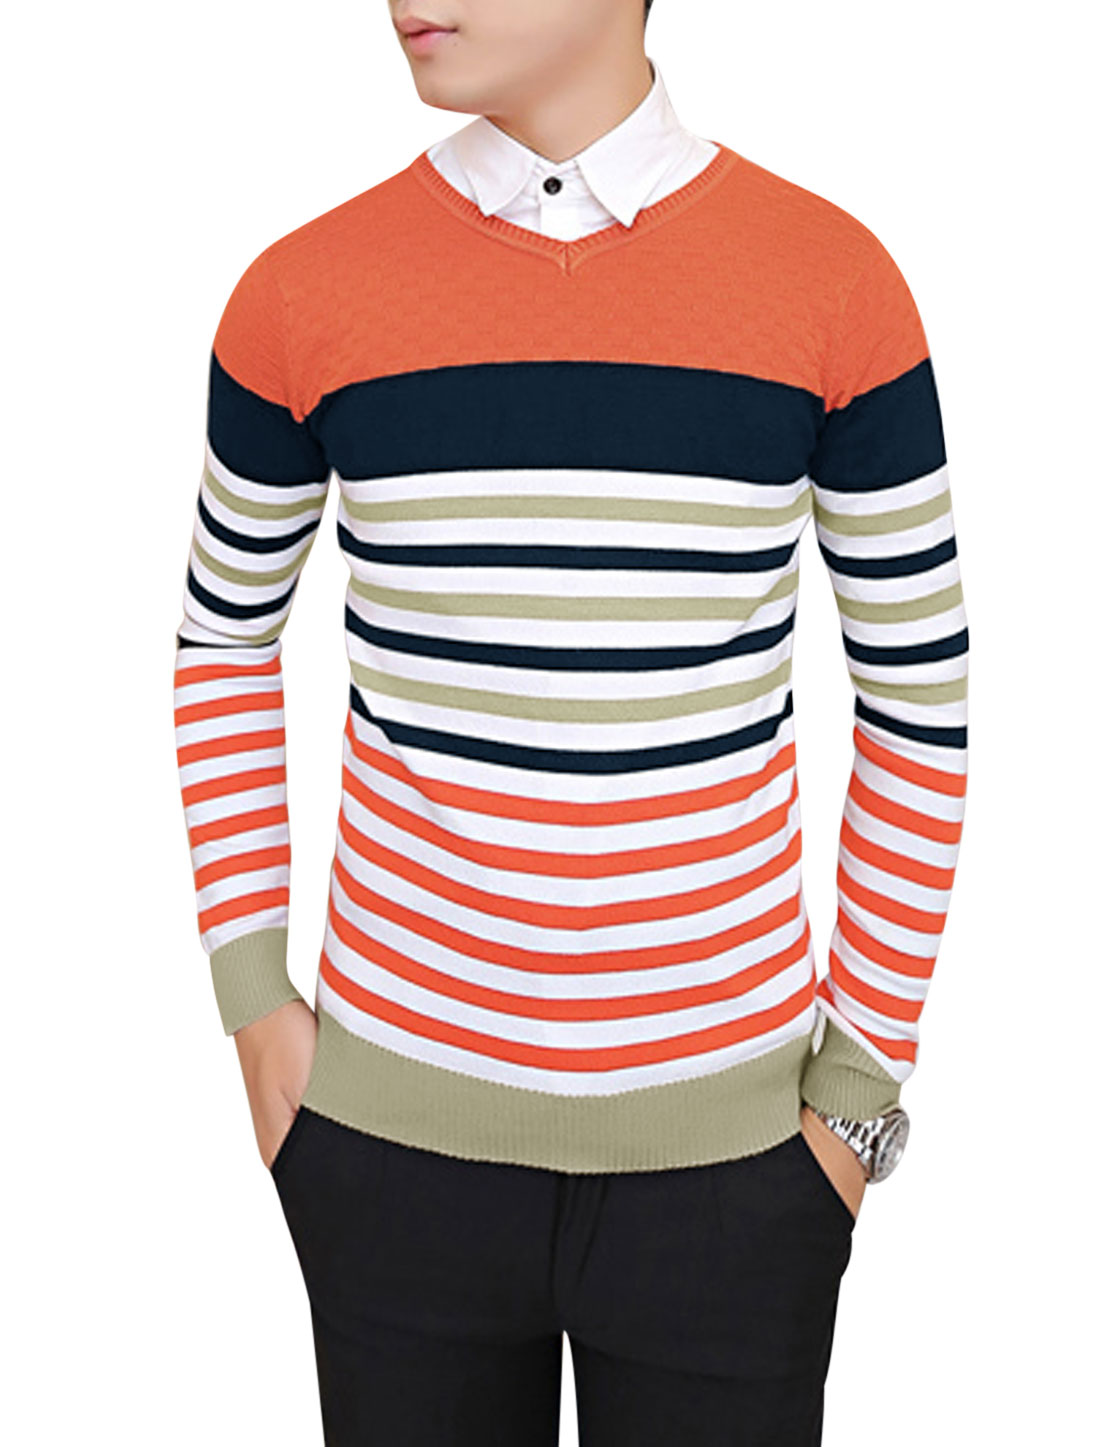 Men V Neck Horizontal Stripes Ribbed Hem Knit Shirt Orange Red S